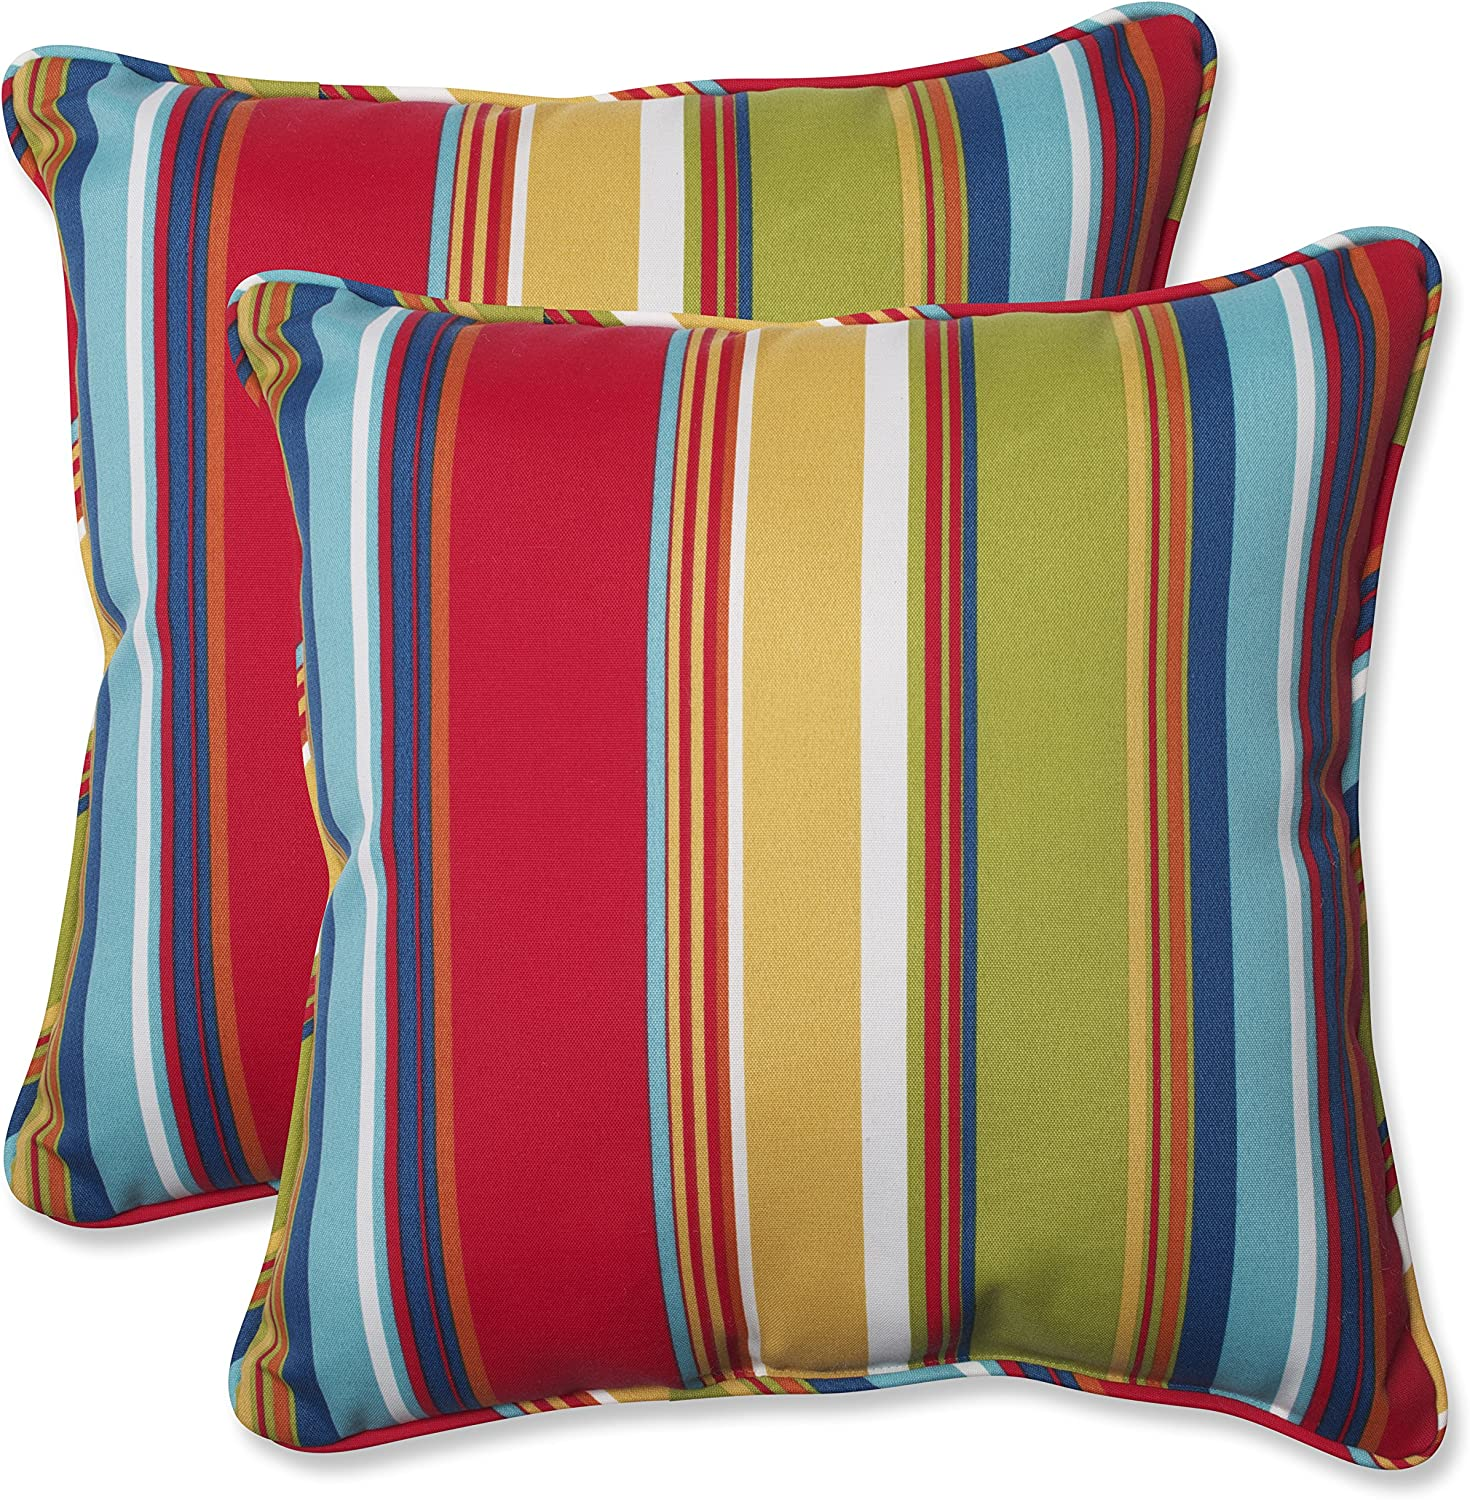 Pillow Perfect 564210 Outdoor Westport Throw Pillow, Set of 2, 18.5 , Multicolored